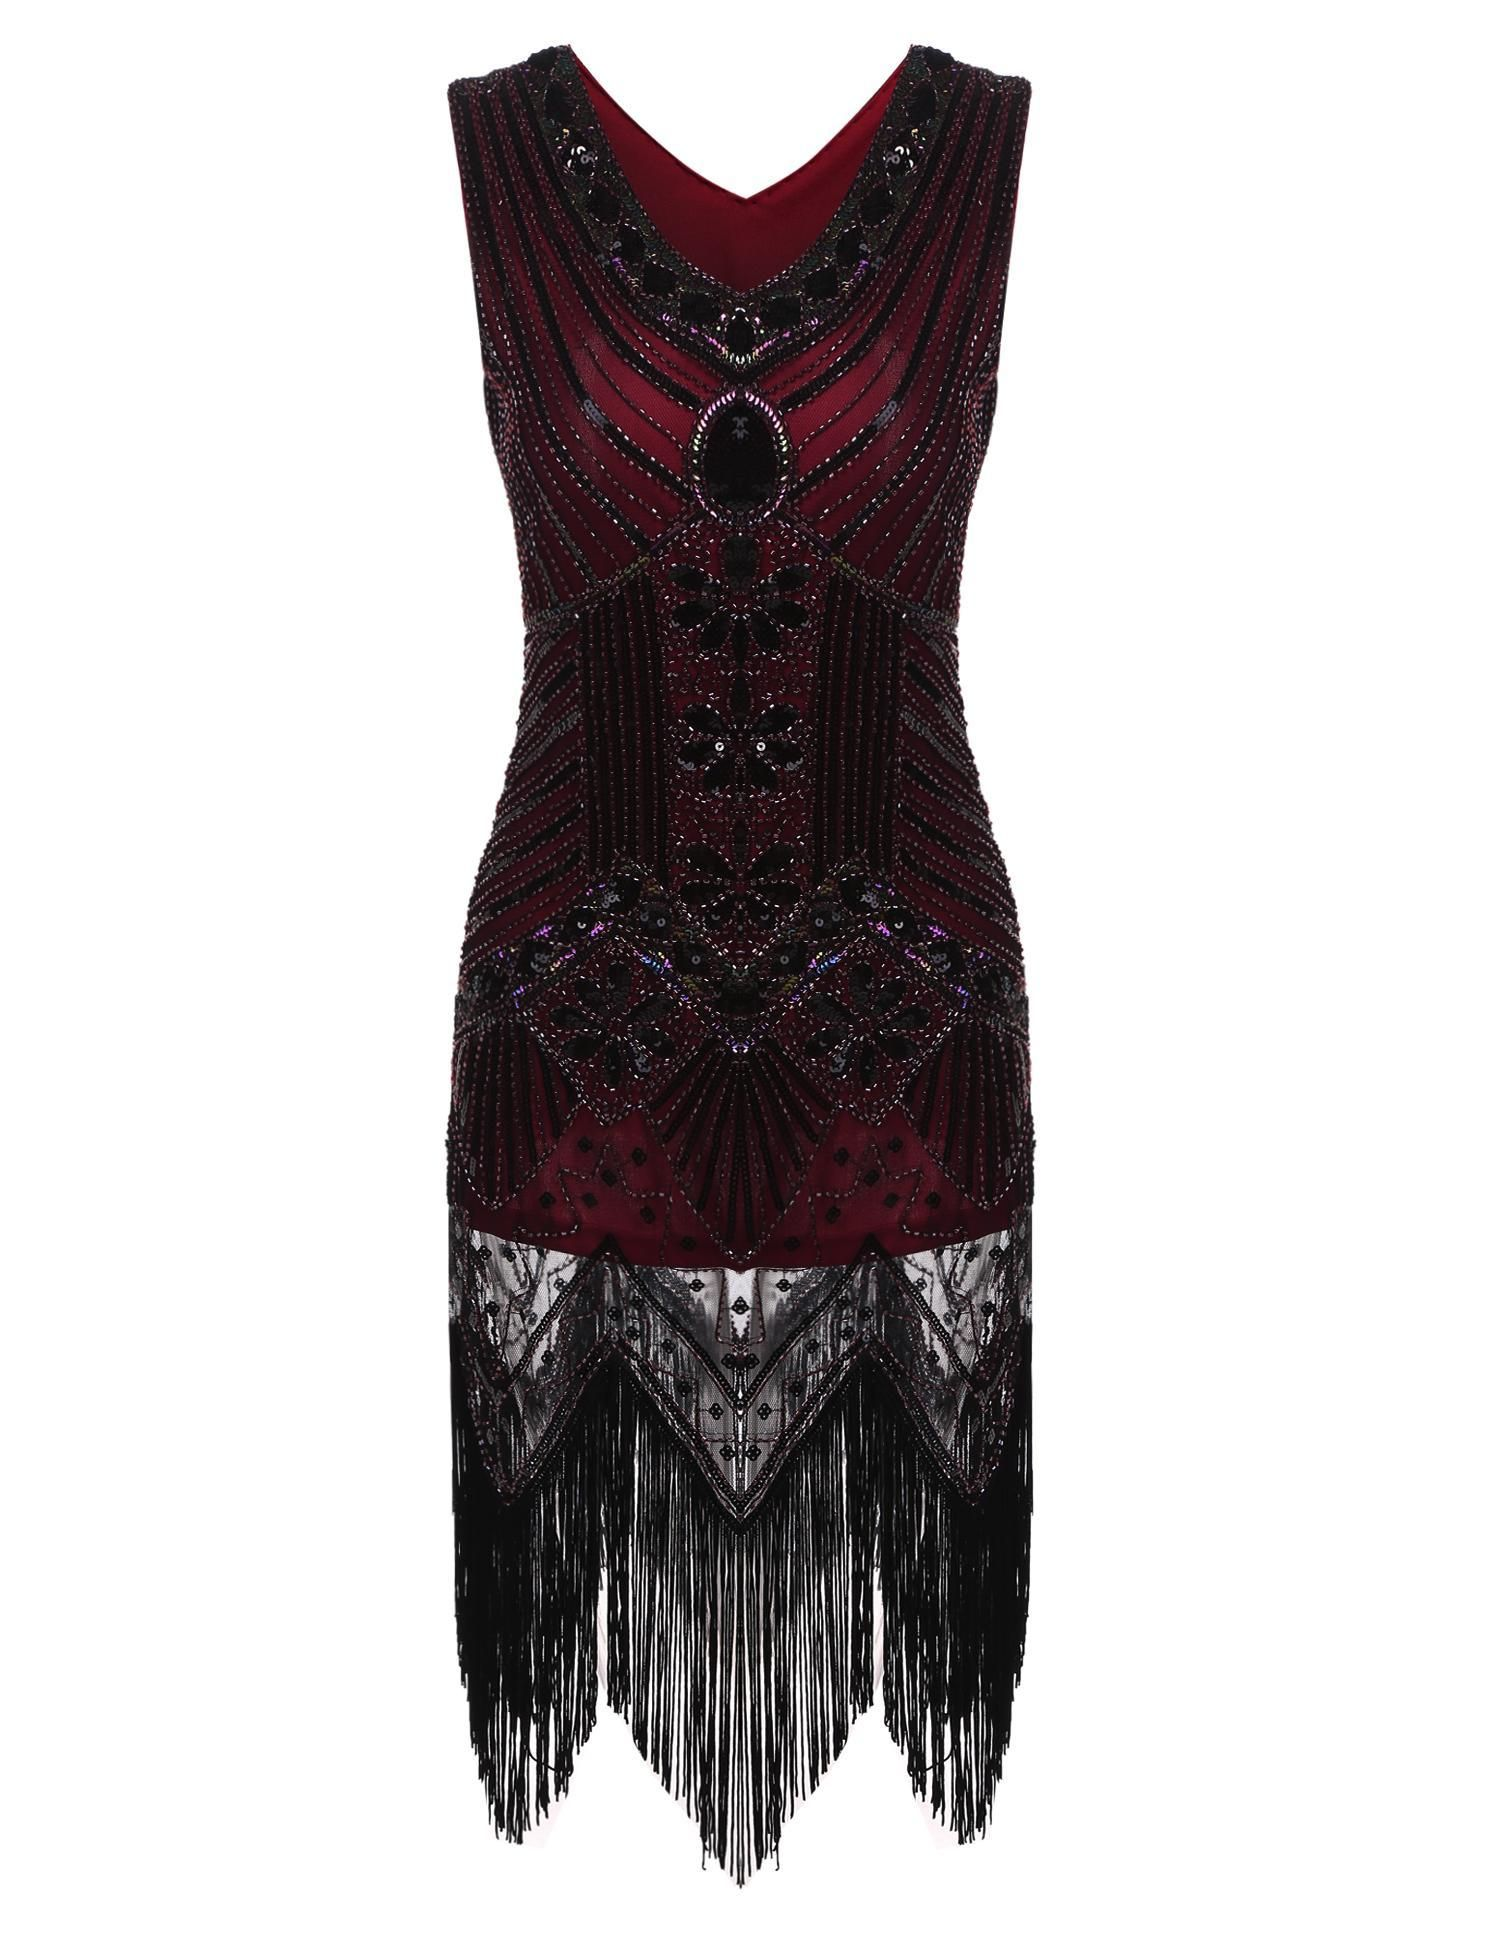 Wine red vintage s style package hip tassel sequined flapper